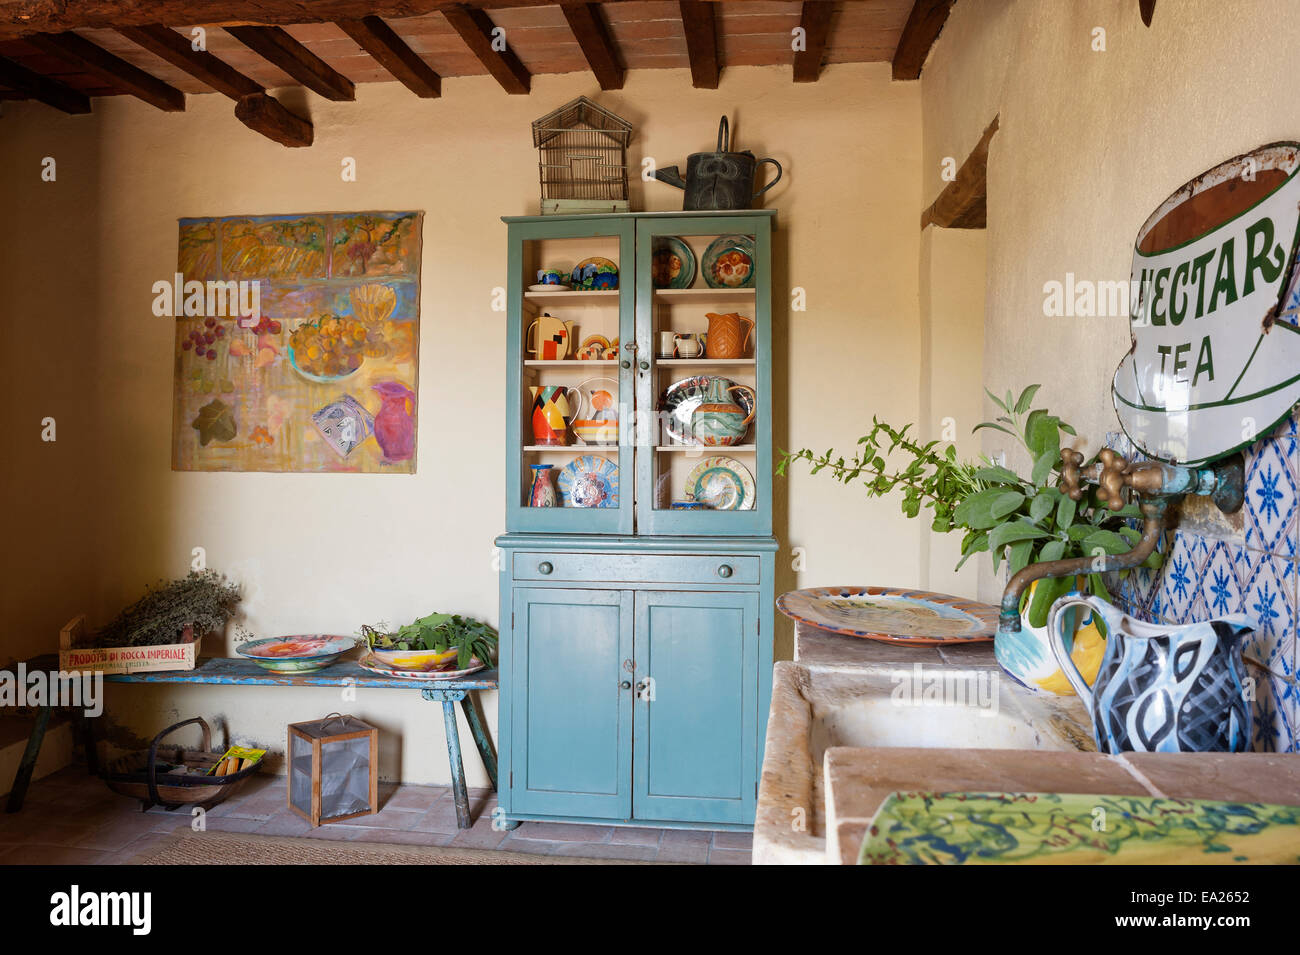 Blue dresser full of brightly coloured crockery and jugs in rustic room with artwork and vintage enamel sign Stock Photo